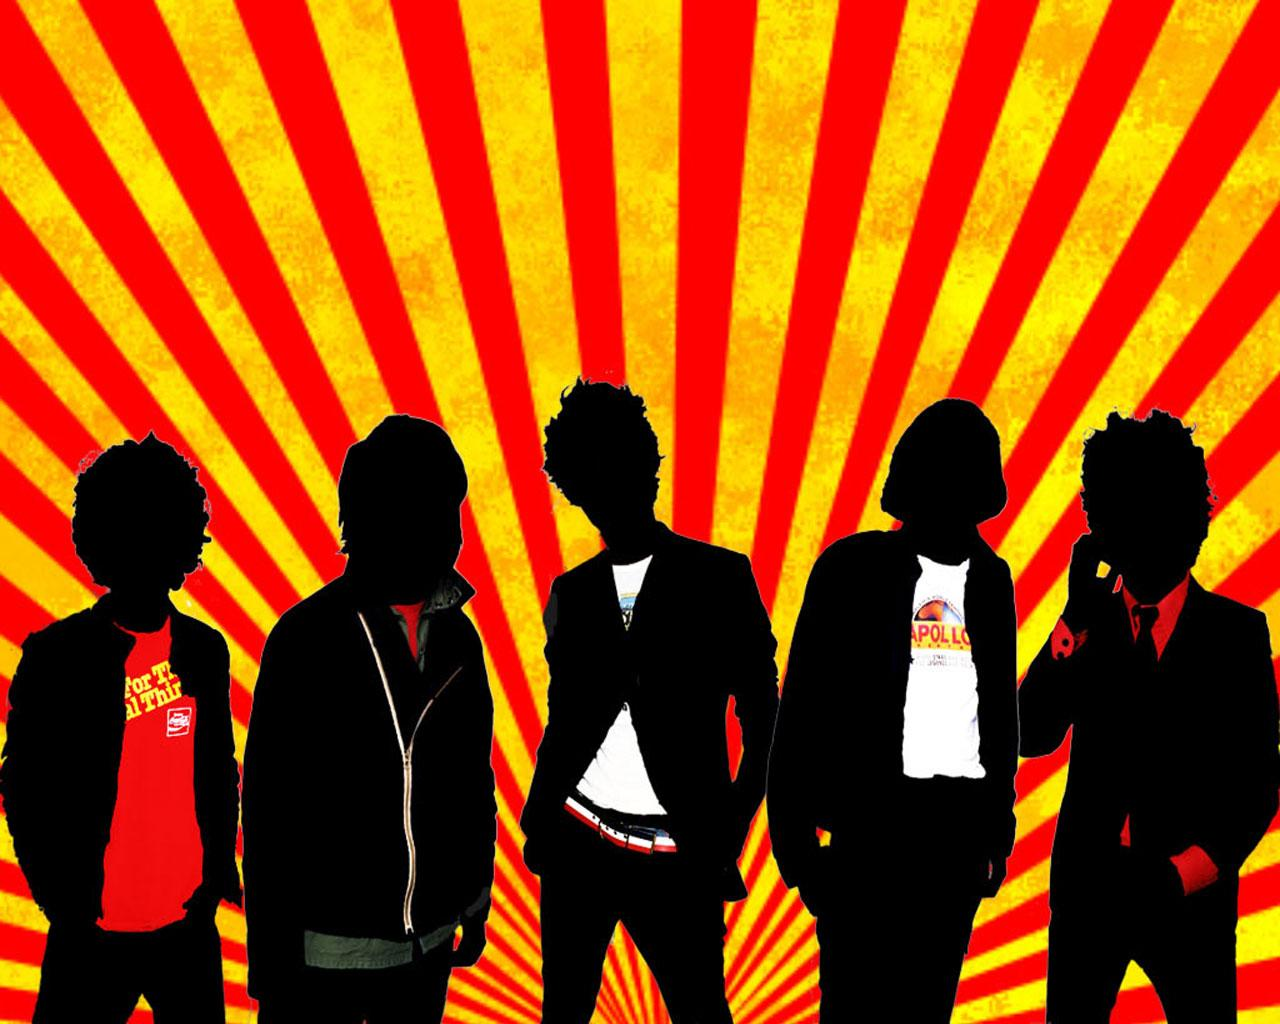 Best band the strokes 1280x1024 wallpaper 3 the strokes wallpaper 3 1280 x 1024 altavistaventures Images